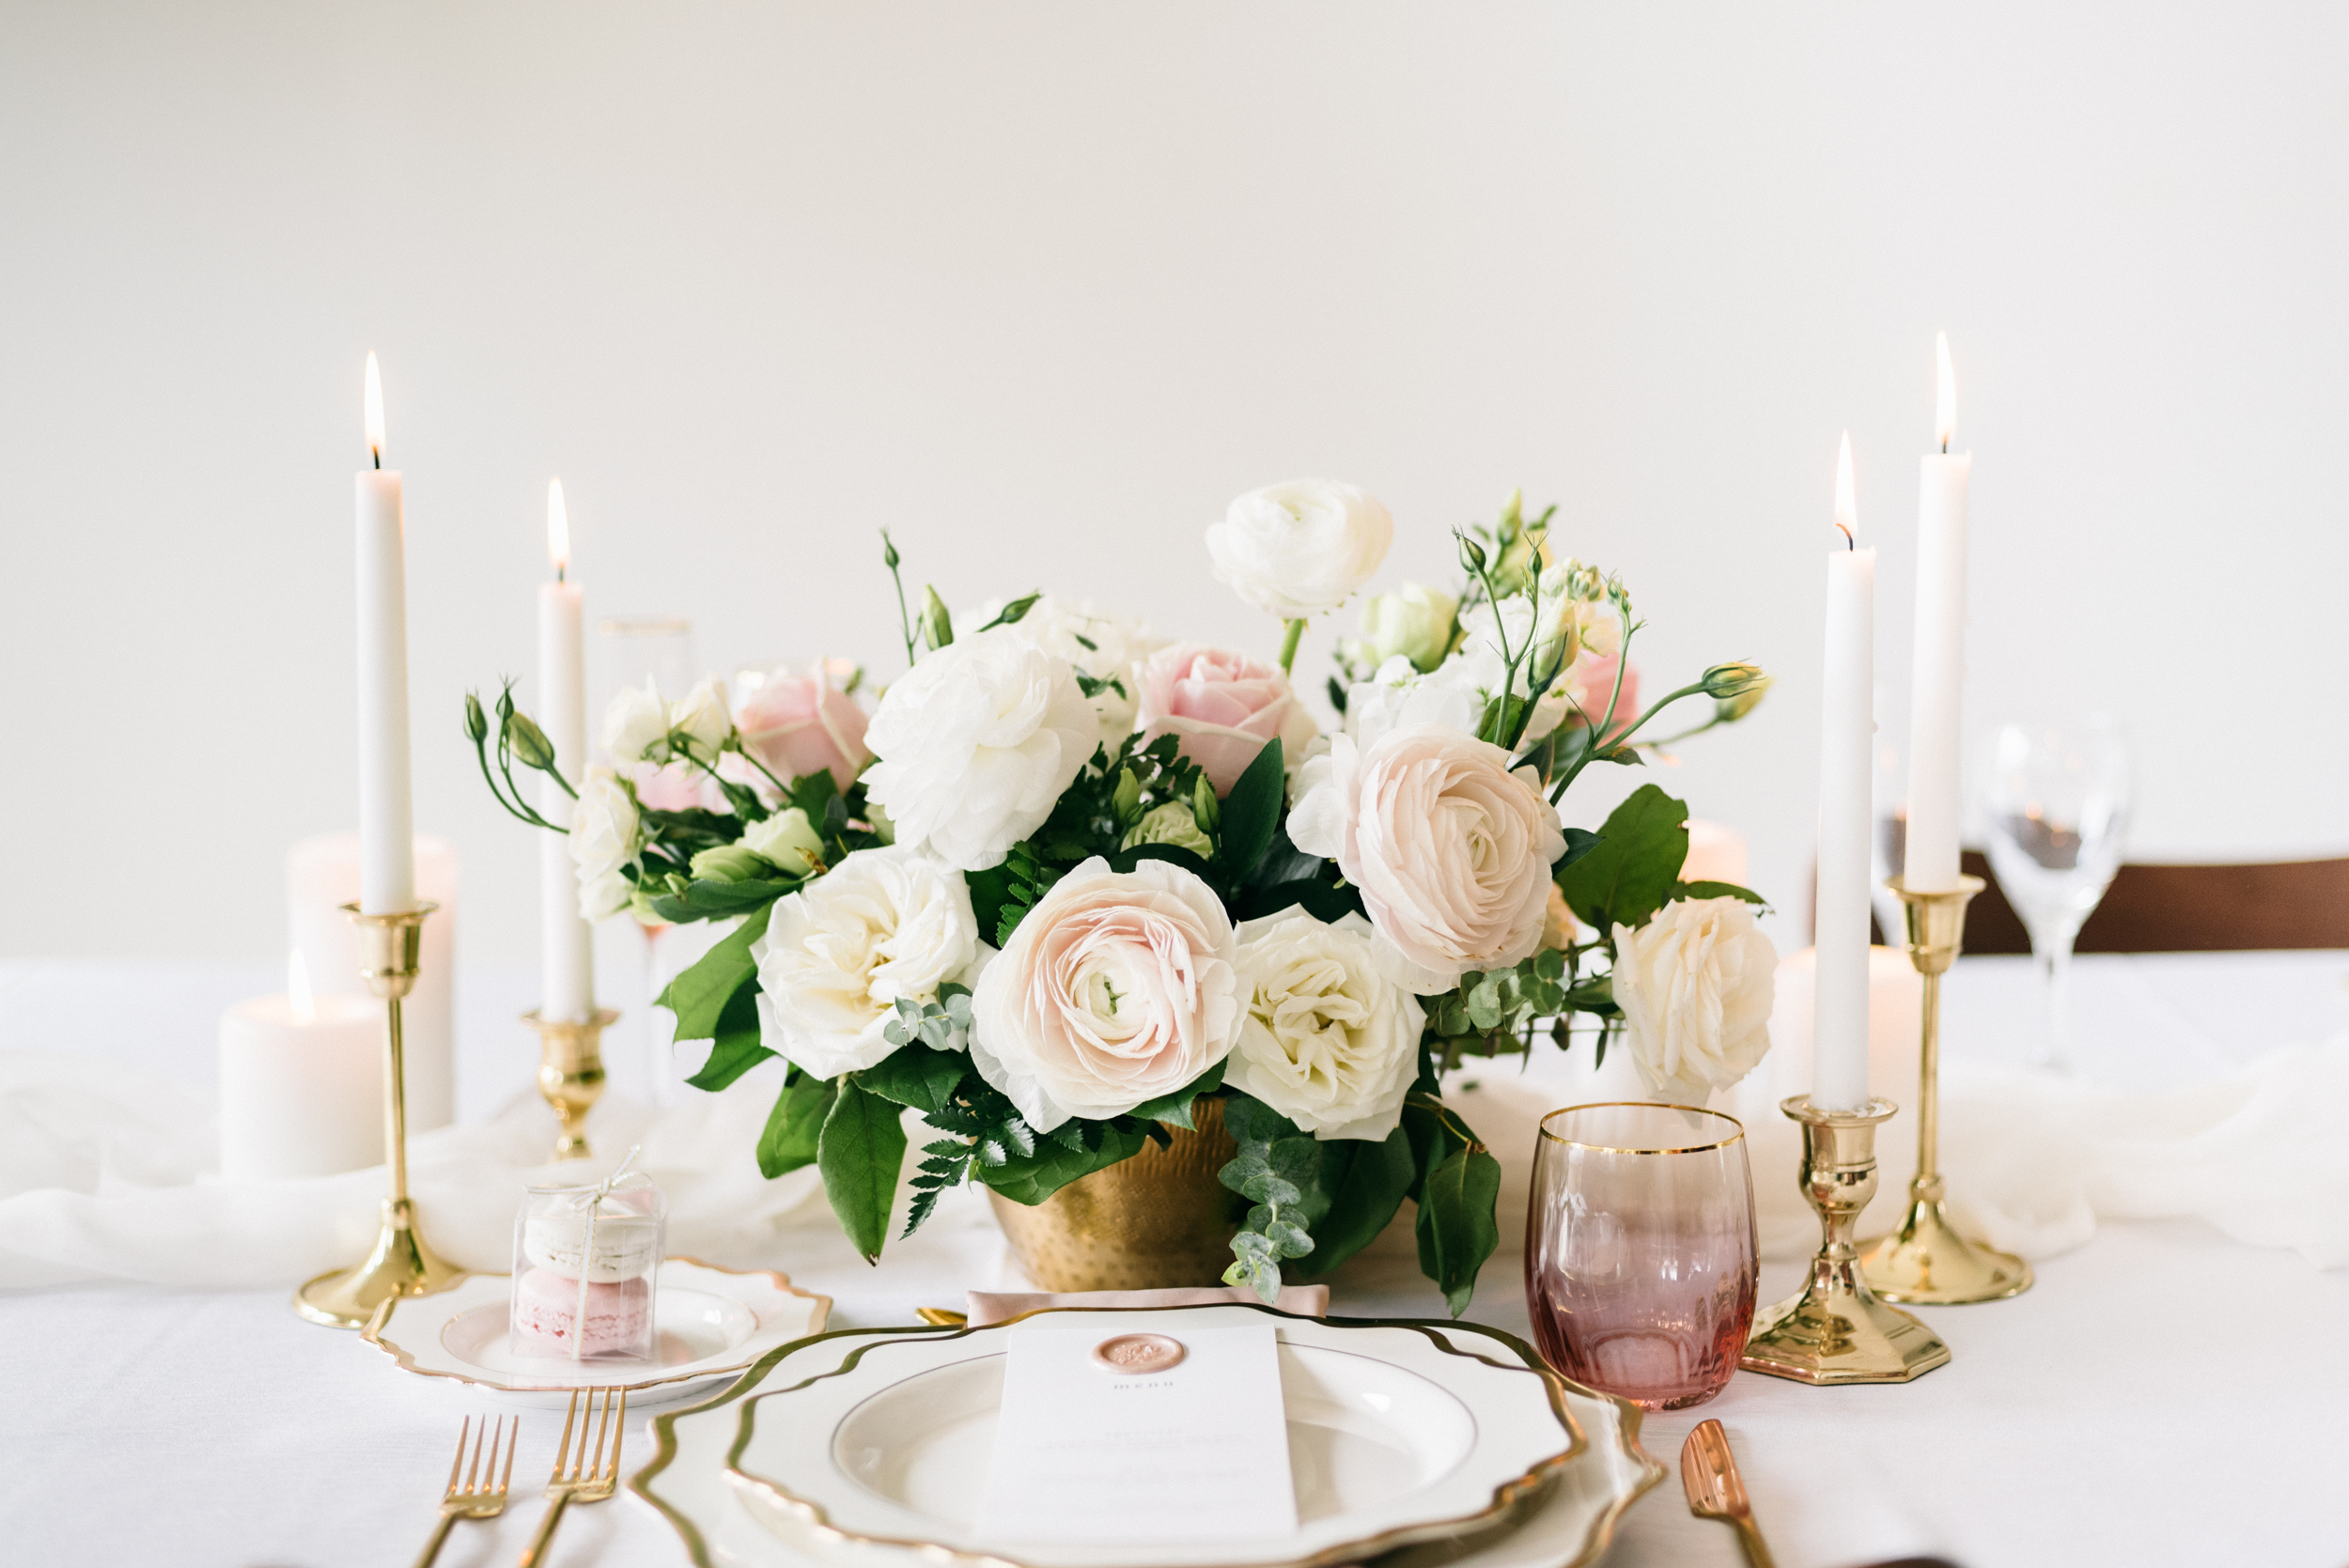 styled-tablescapes-100.jpg